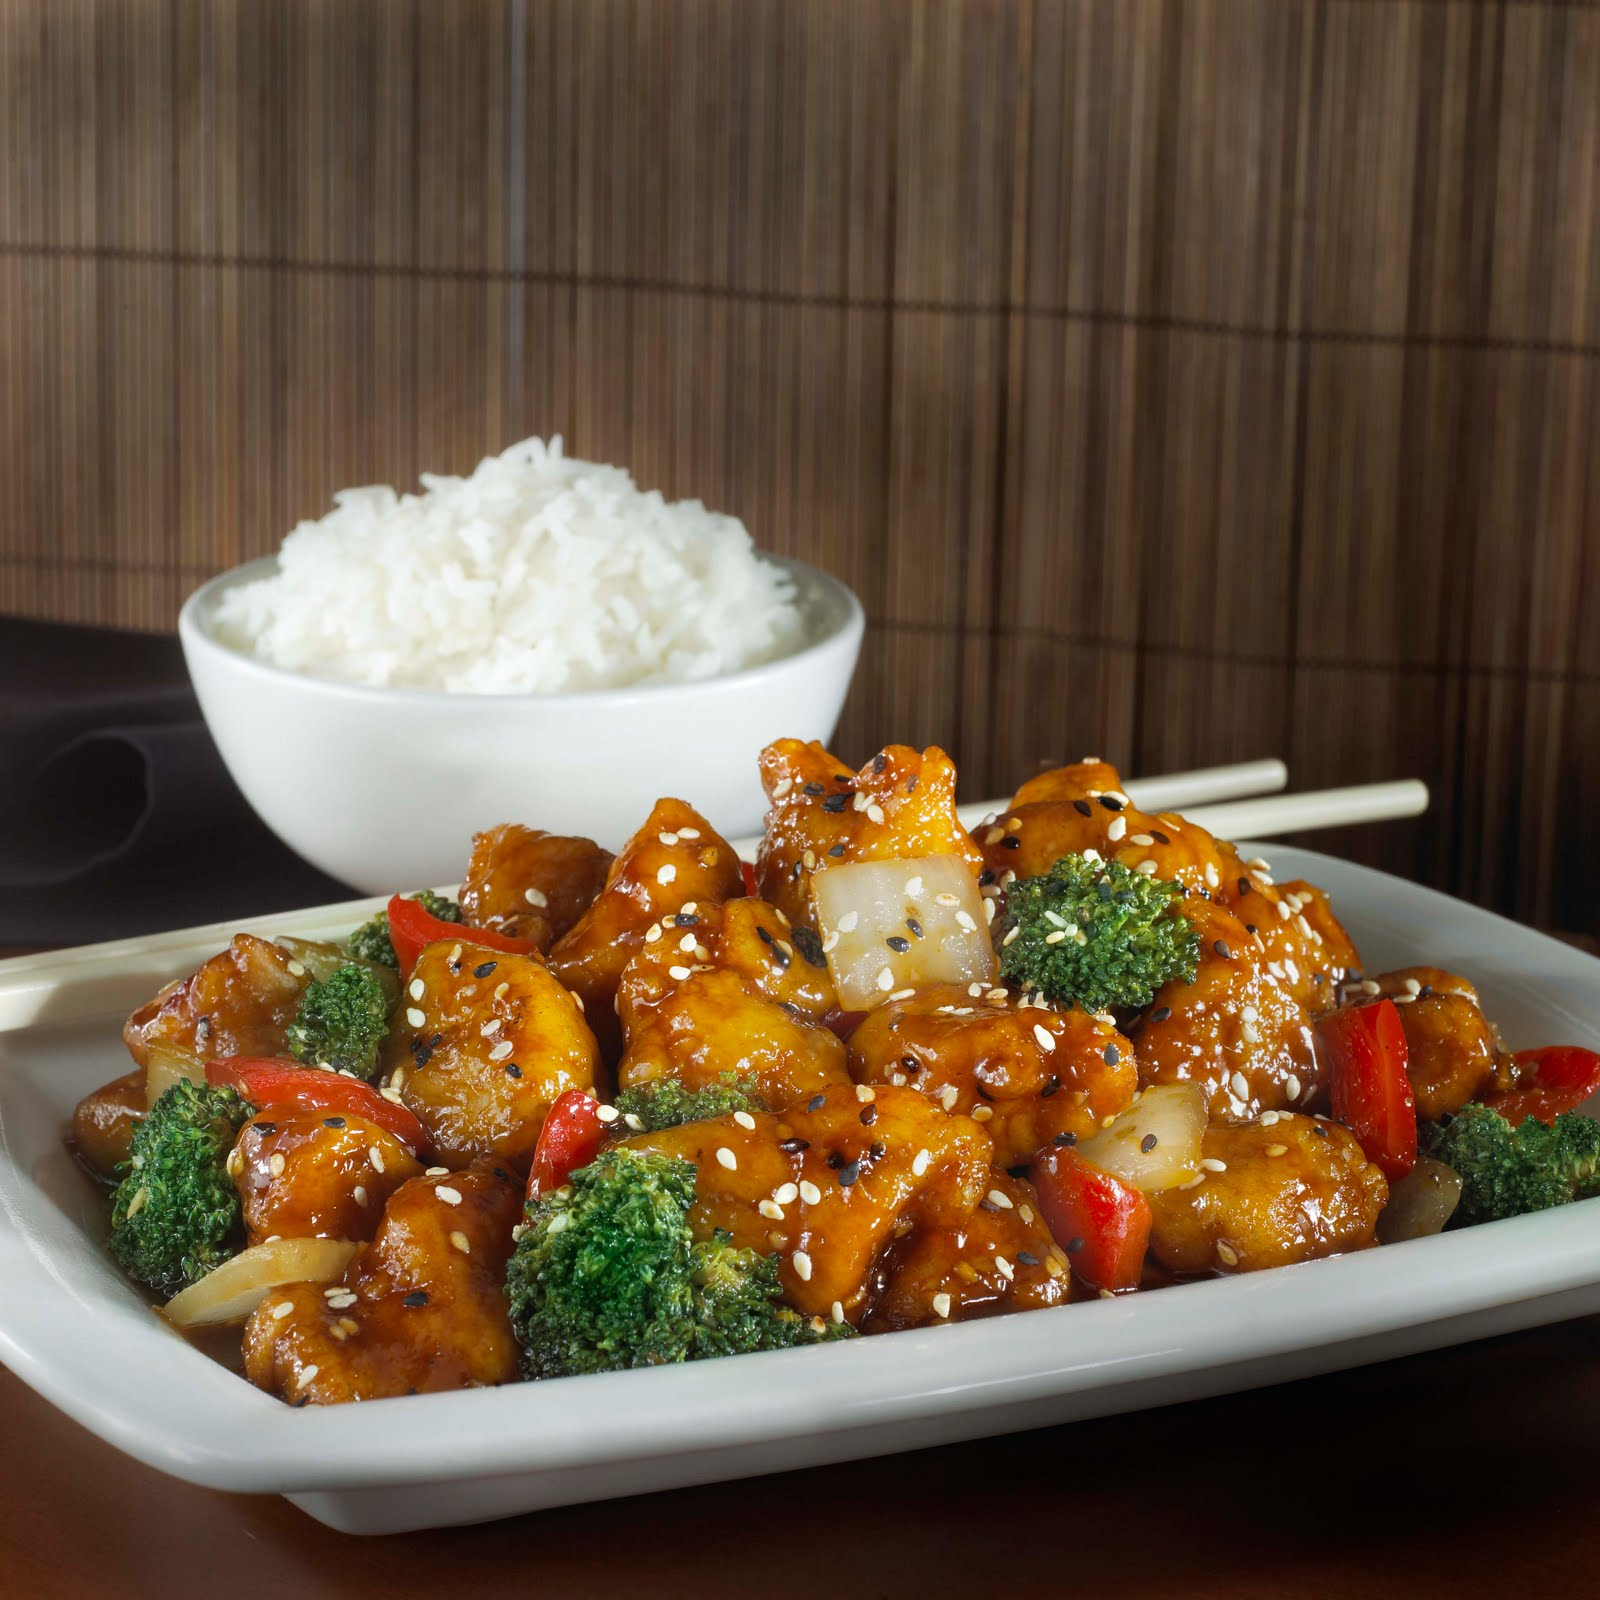 chinese food images sesame chicken hd wallpaper and